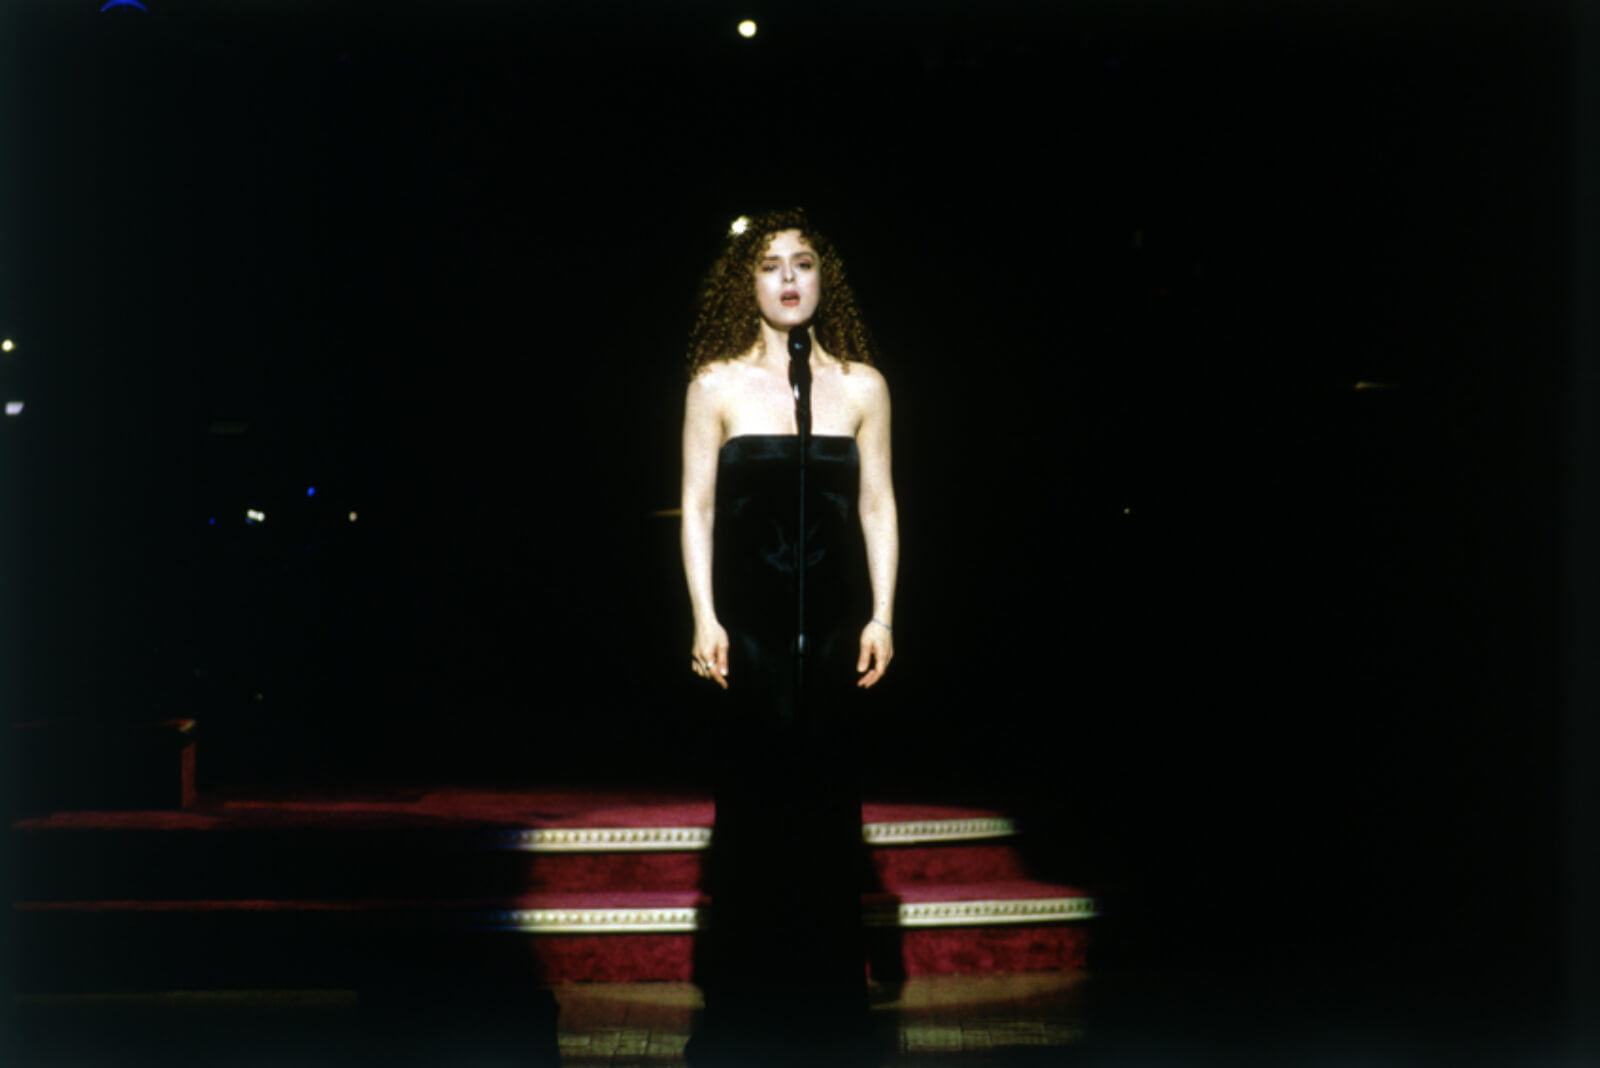 Bernadette Peters stands and sings. She is wearing a sleeveless long black dress.